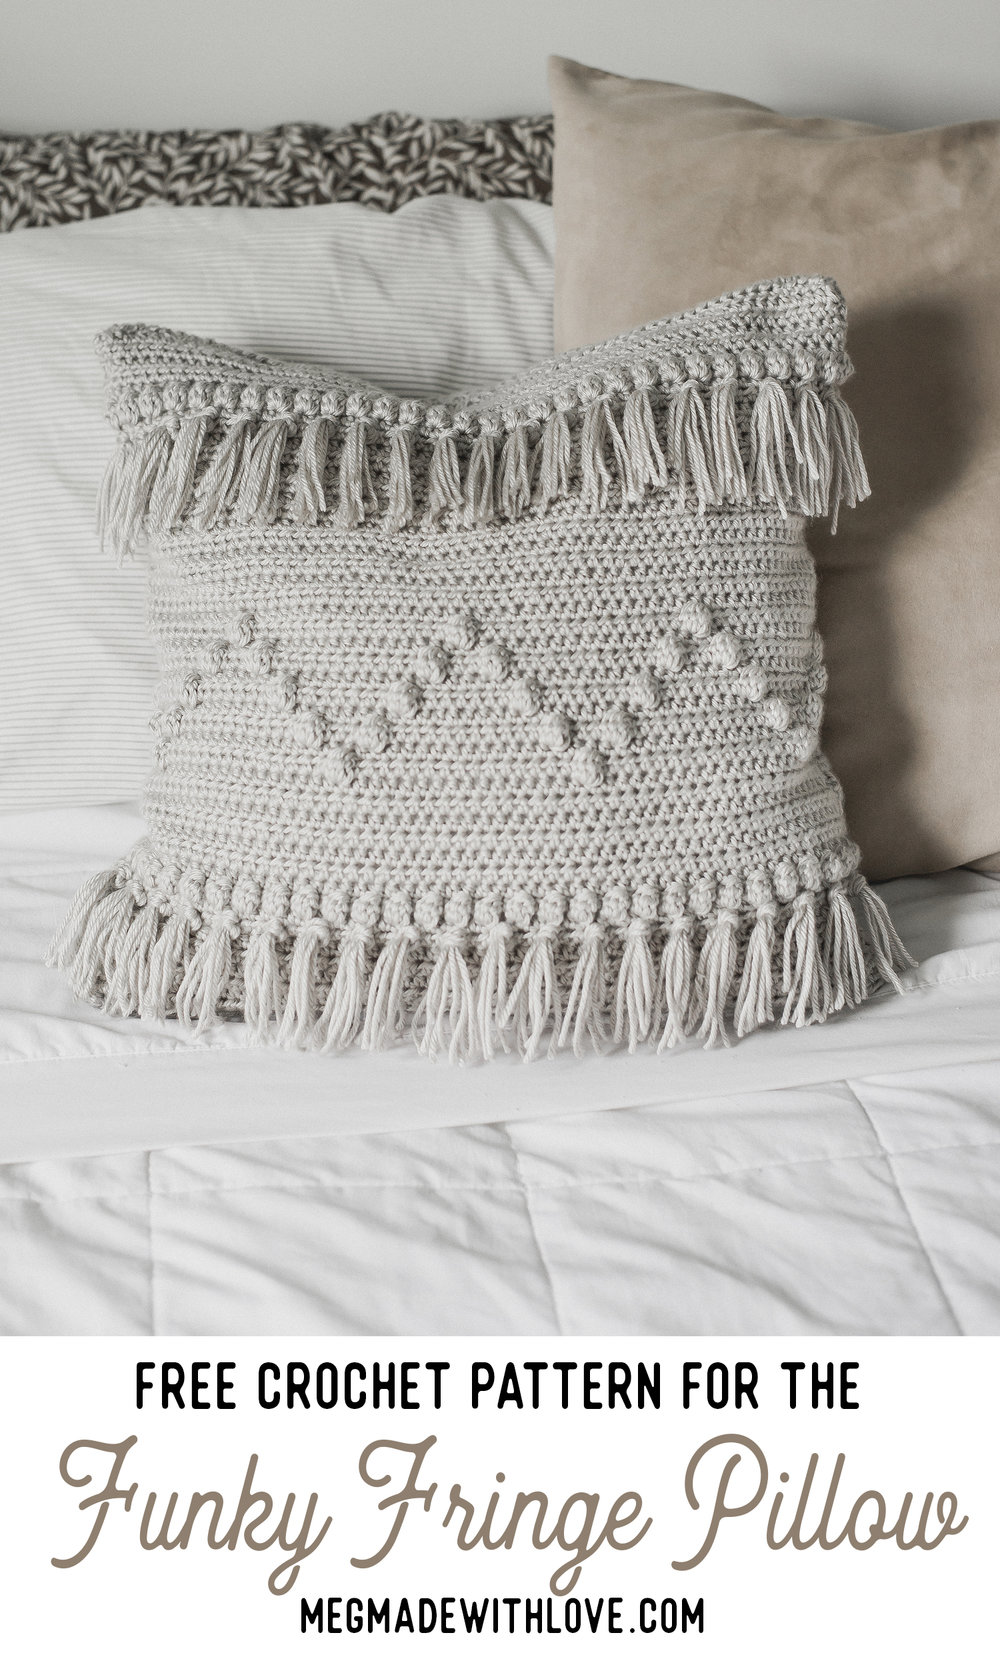 Free Crochet Pattern for Crochet Fringe Pillow - Megmade with Love